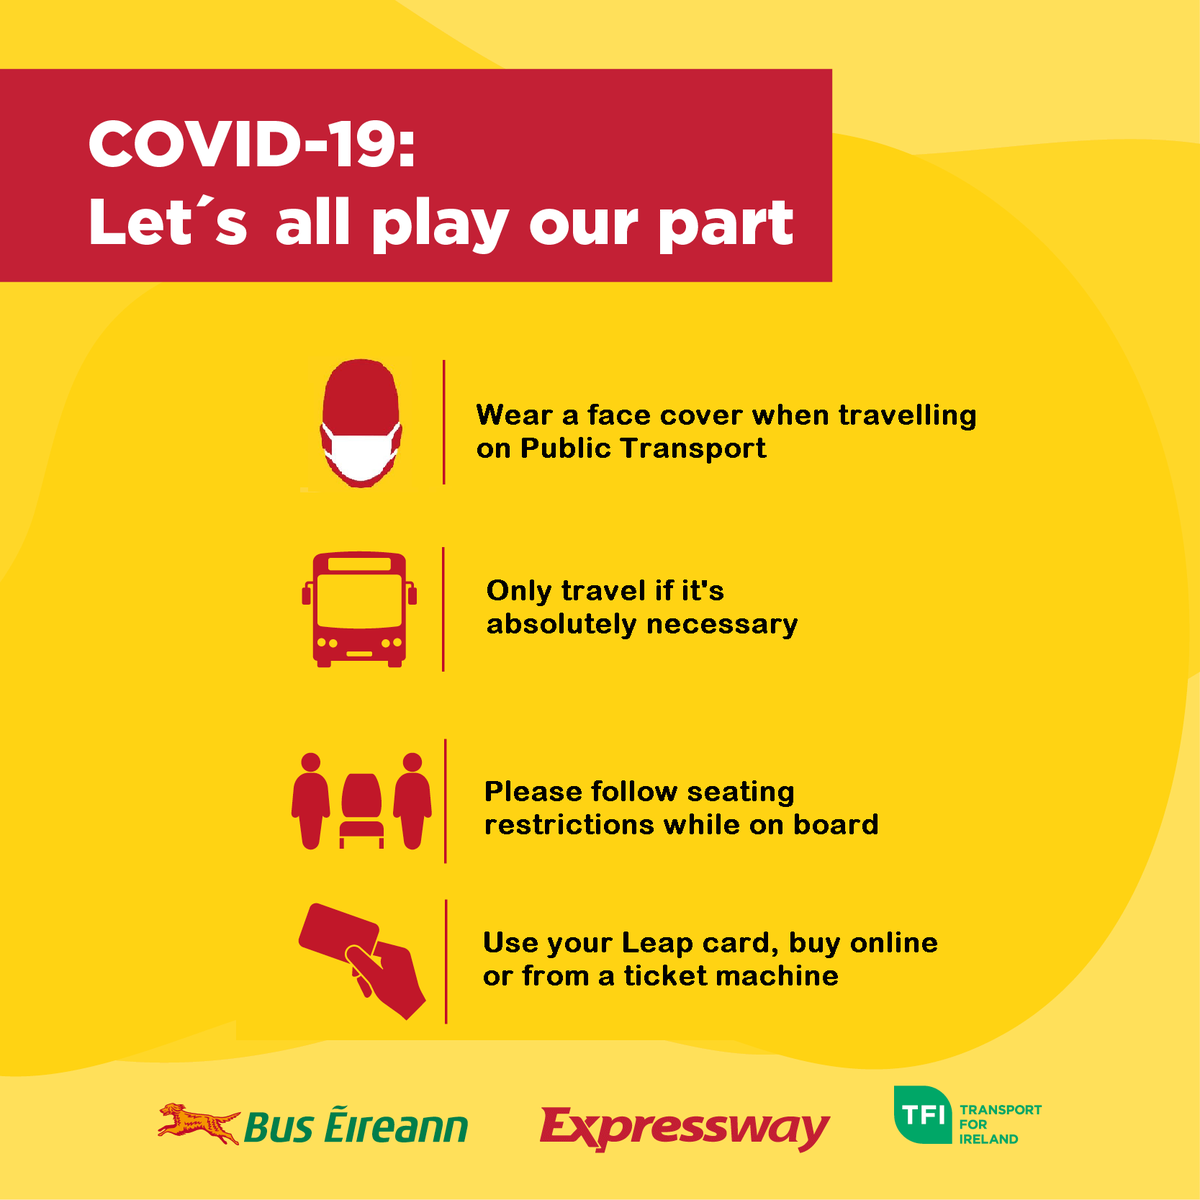 Dublin has entered #Level3 restrictions. Please only travel into & out of Dublin City & County on our services if it's absolutely essential #COVID19 #DublinLockdown #InThisTogether #HoldFirm #Restrictions #BeSafe #LetsAllPlayOurPart @TFIupdates @roinnslainte @HSELive https://t.co/zvWYUXzcaR